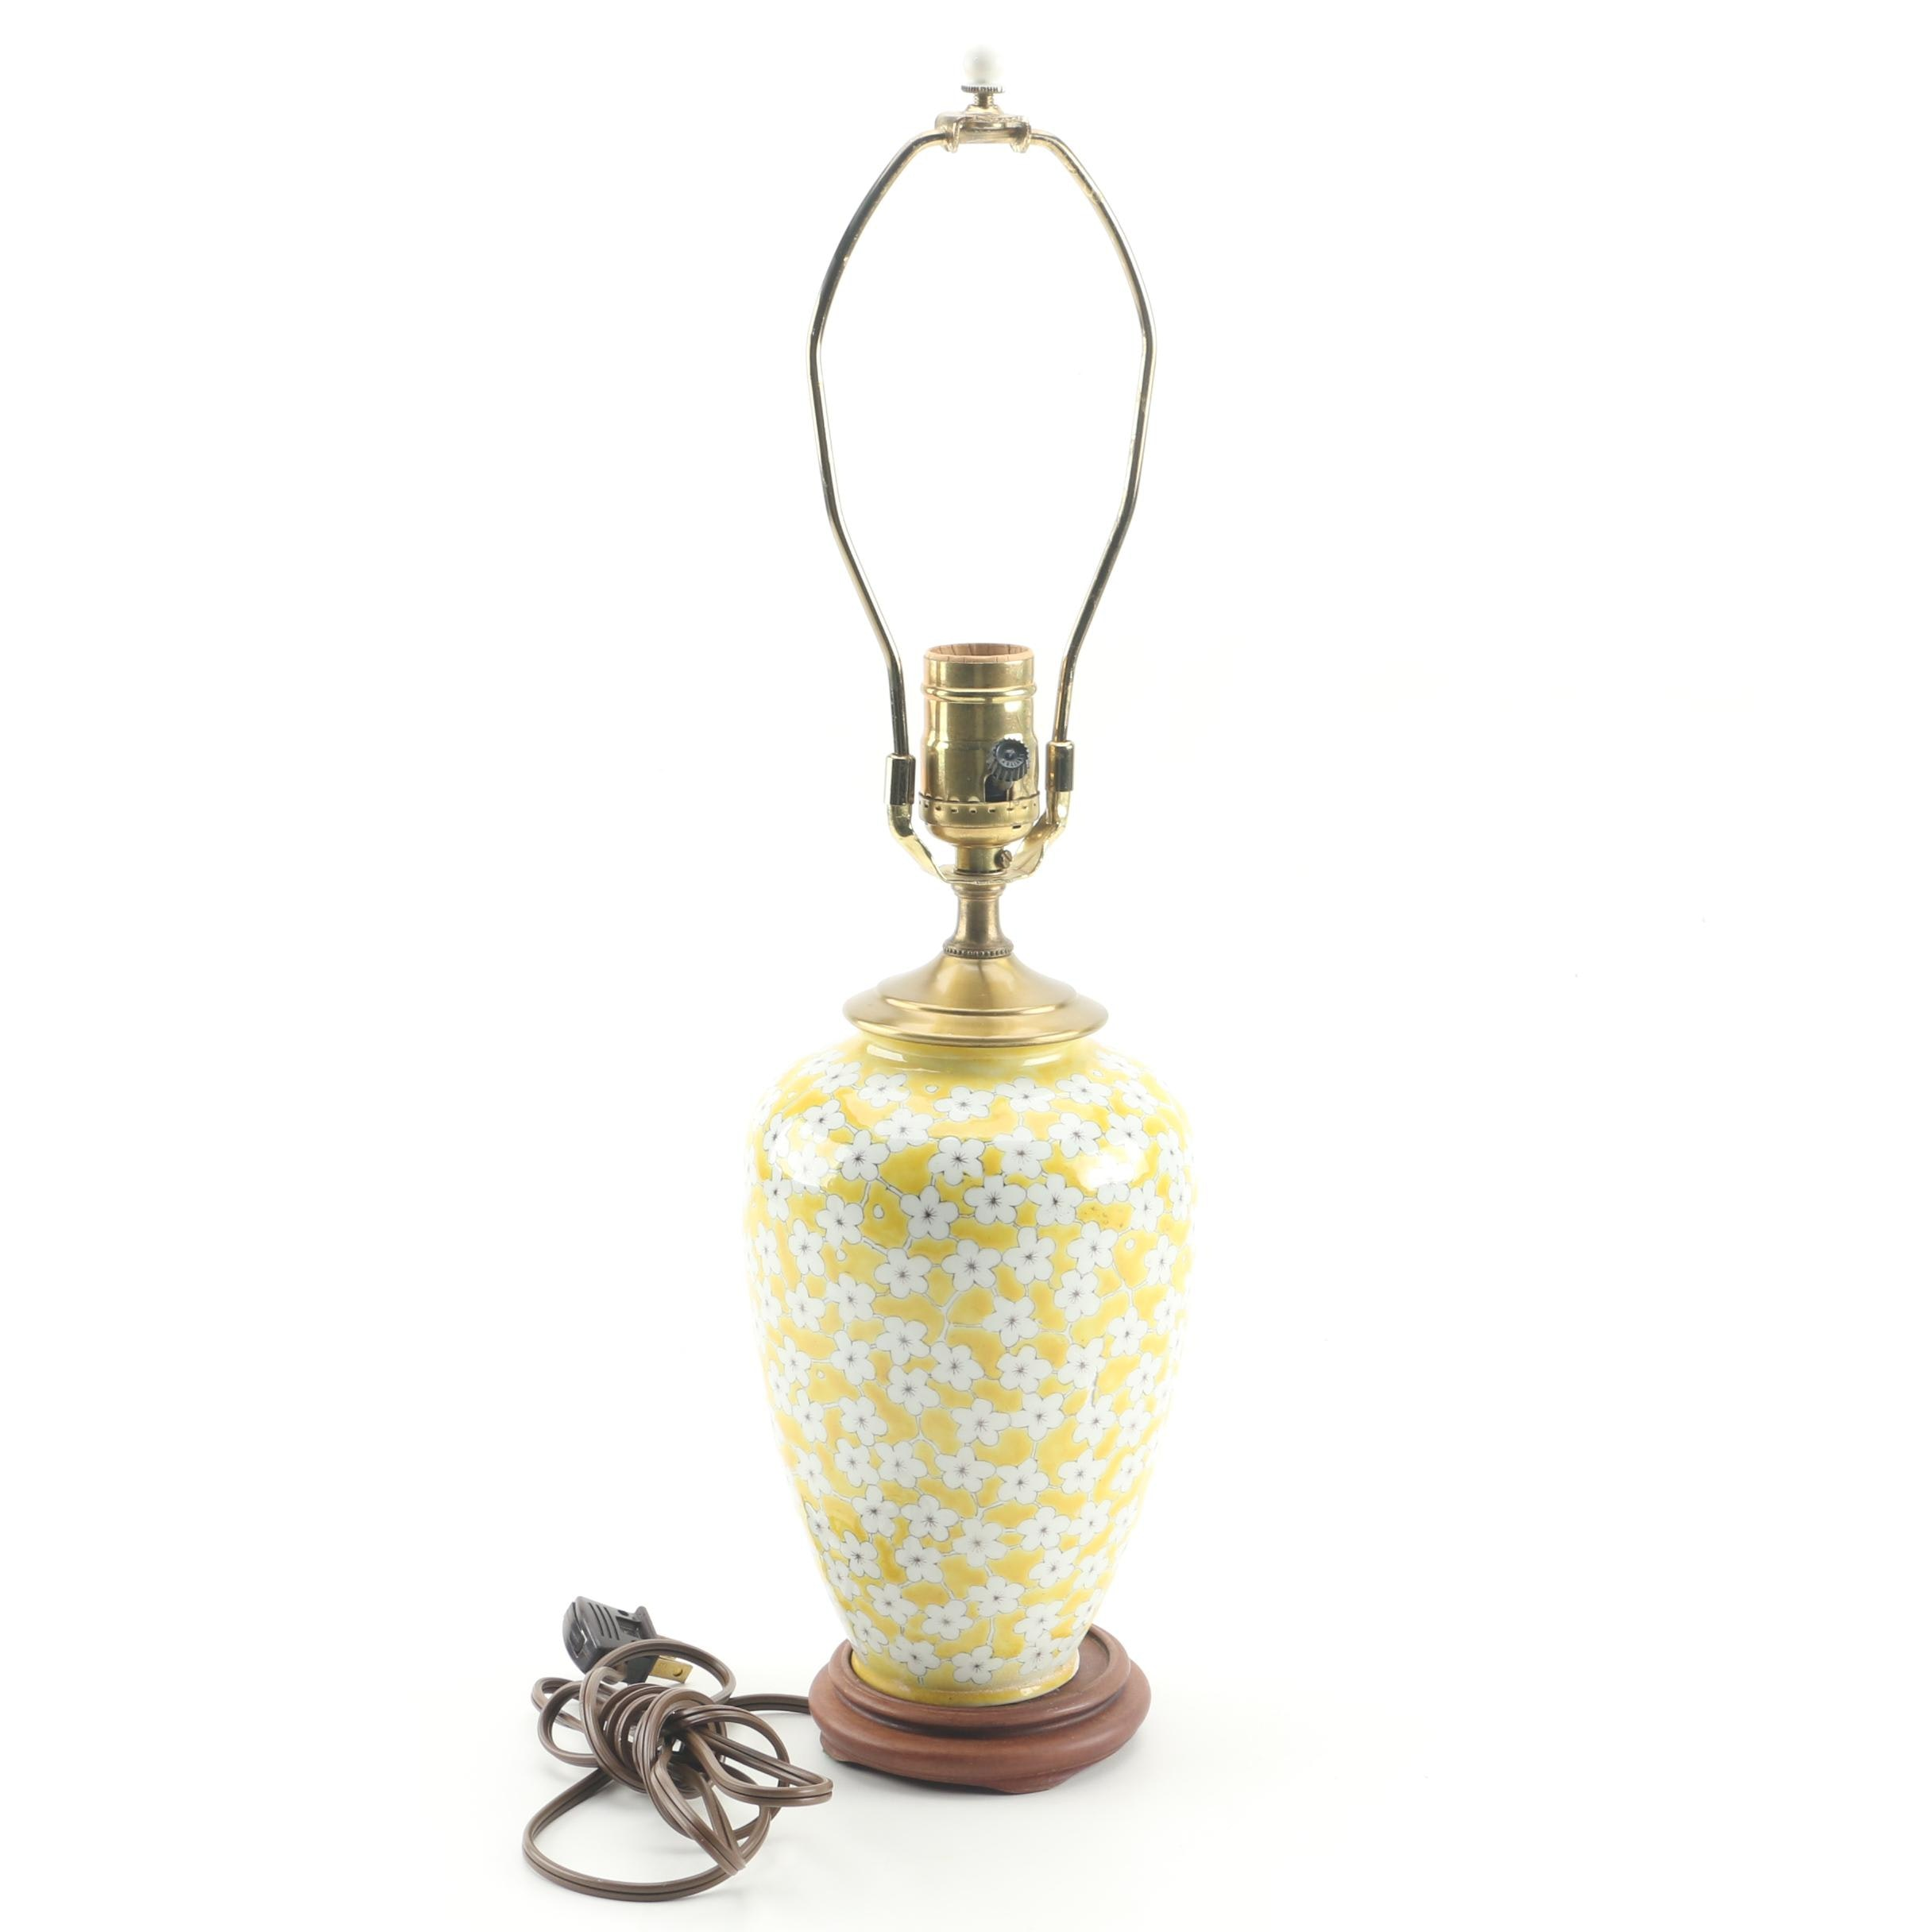 Yellow and White Floral Ceramic Urn Table Lamp